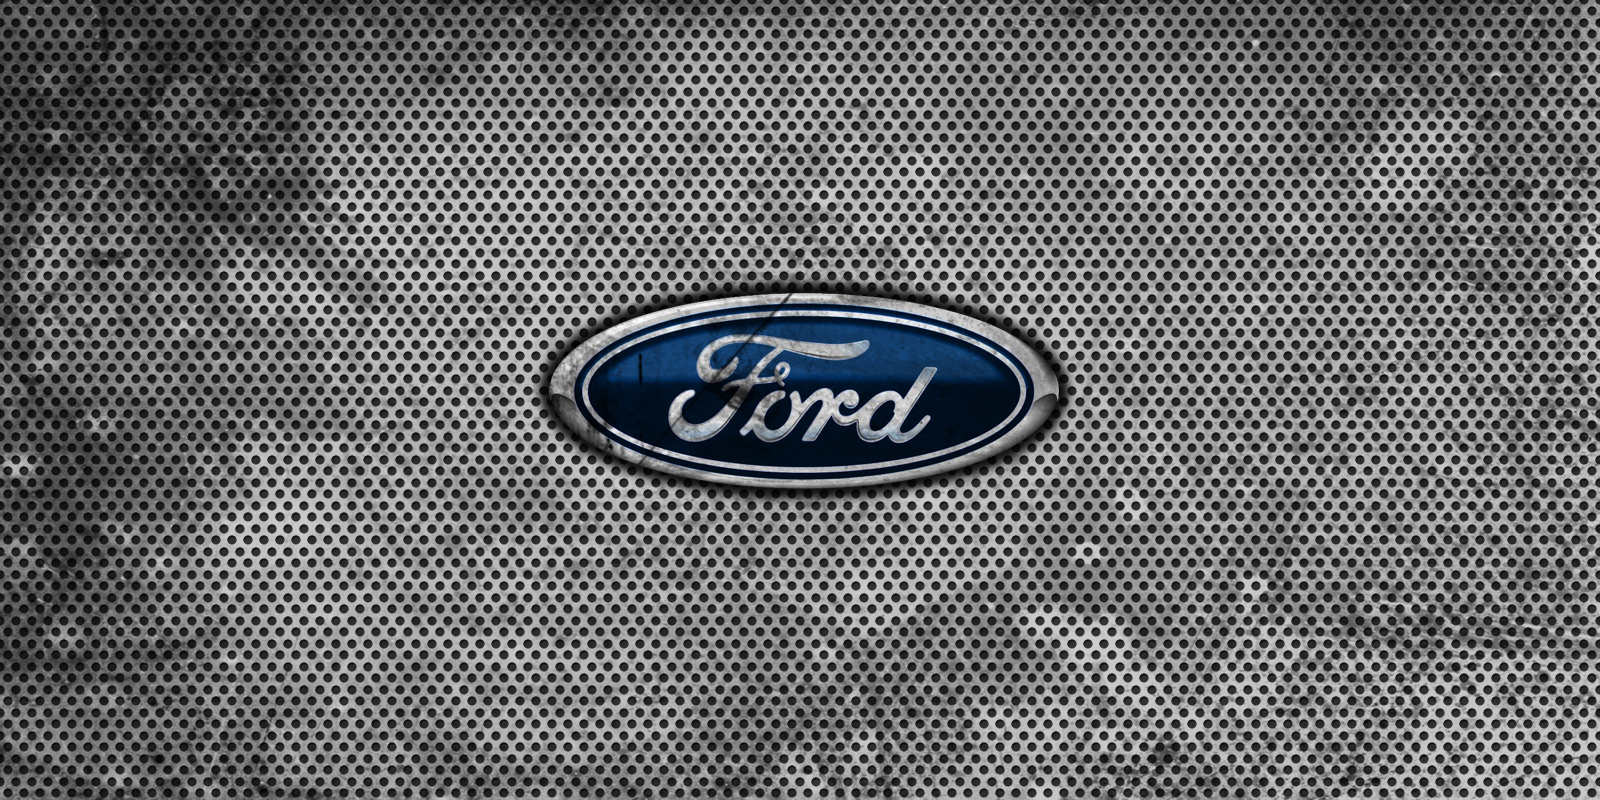 Ford Logo Ford Car Symbol Meaning and History Car Brand 1600x800